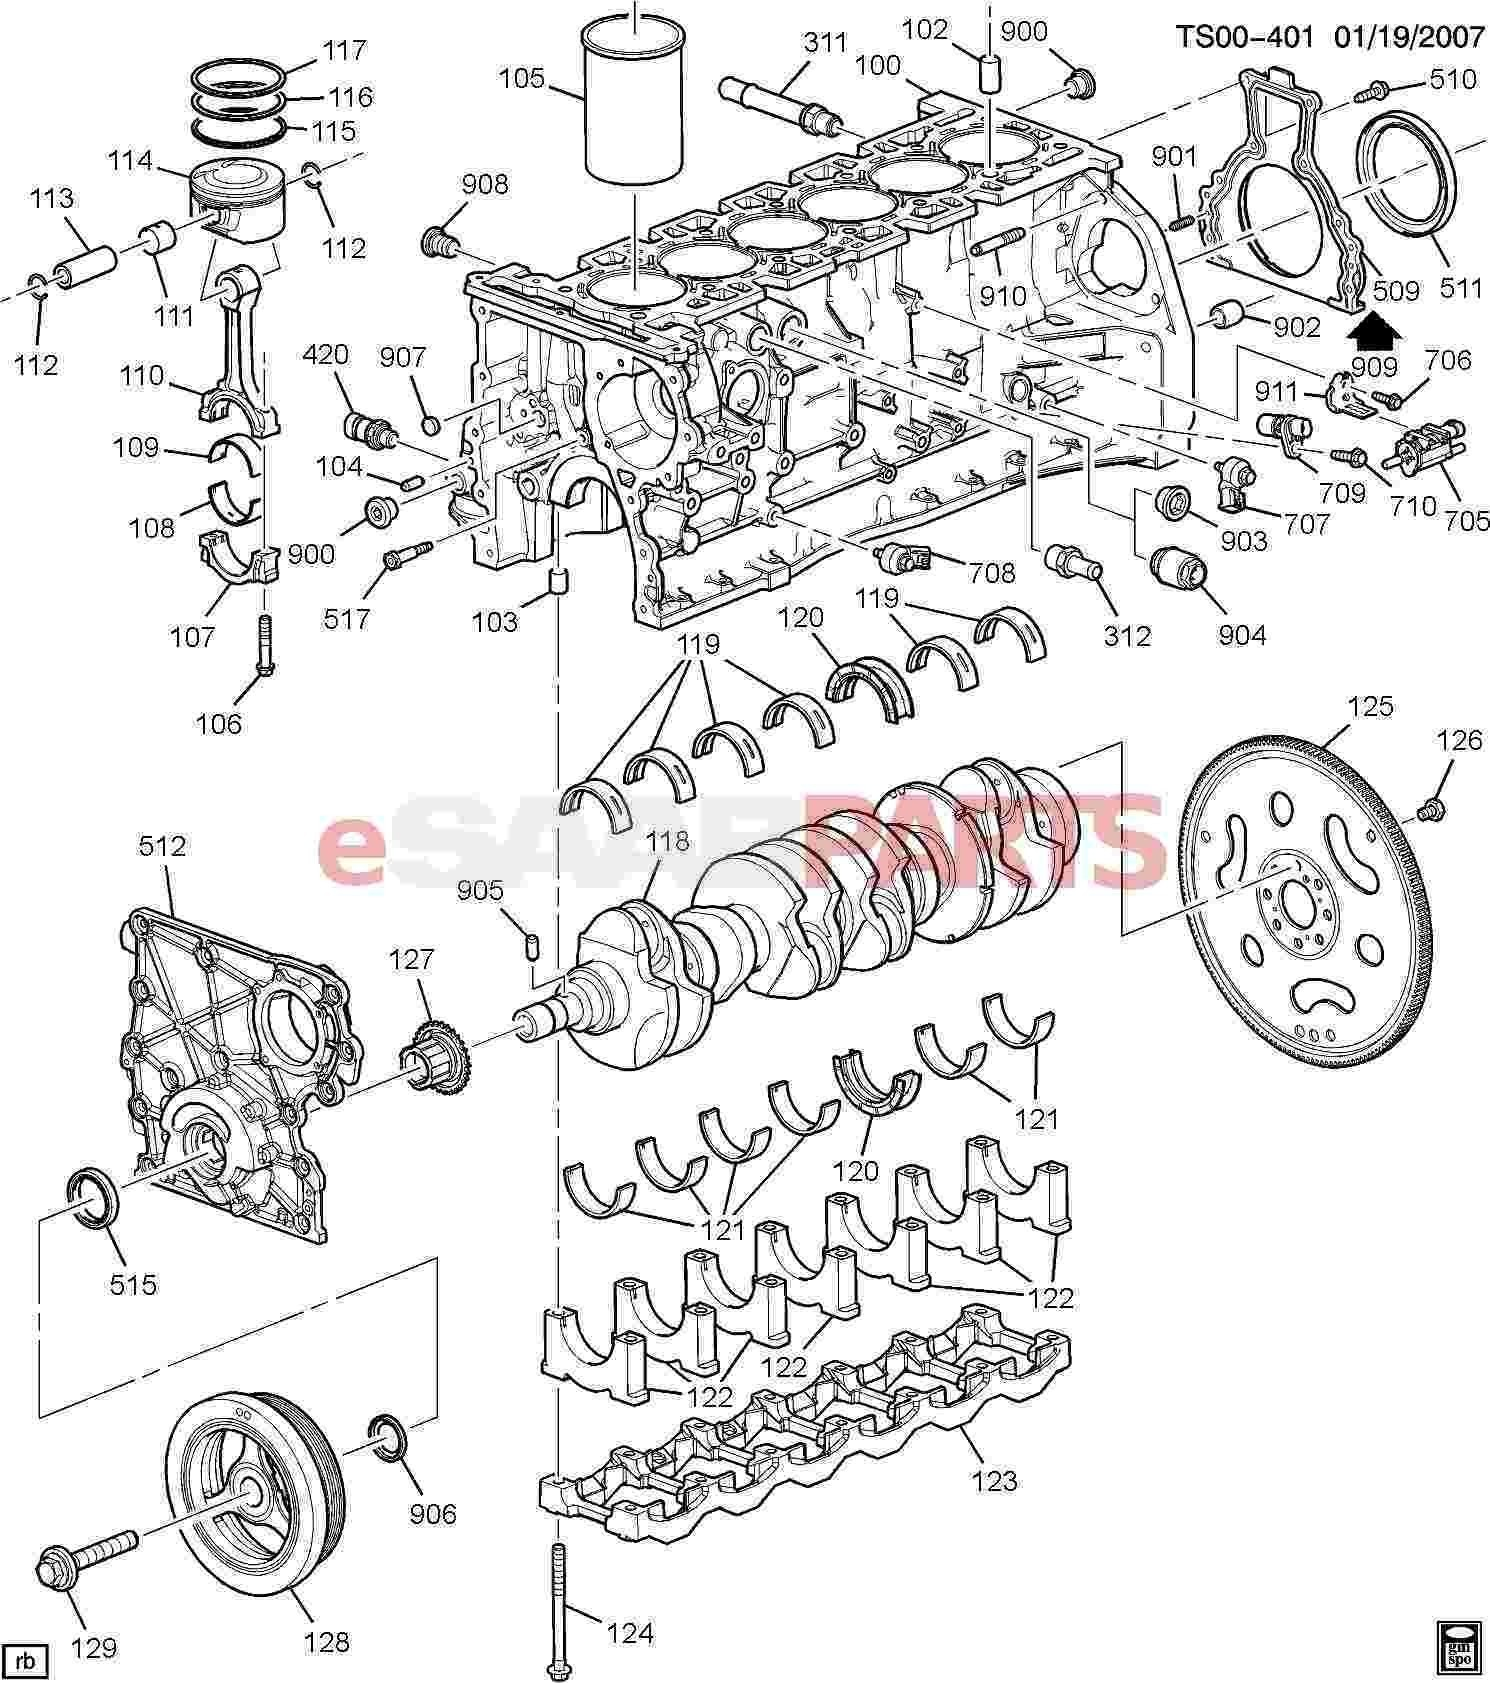 Parts Of Engine Diagram Car Parts Labeled Diagram Of Parts Of Engine Diagram